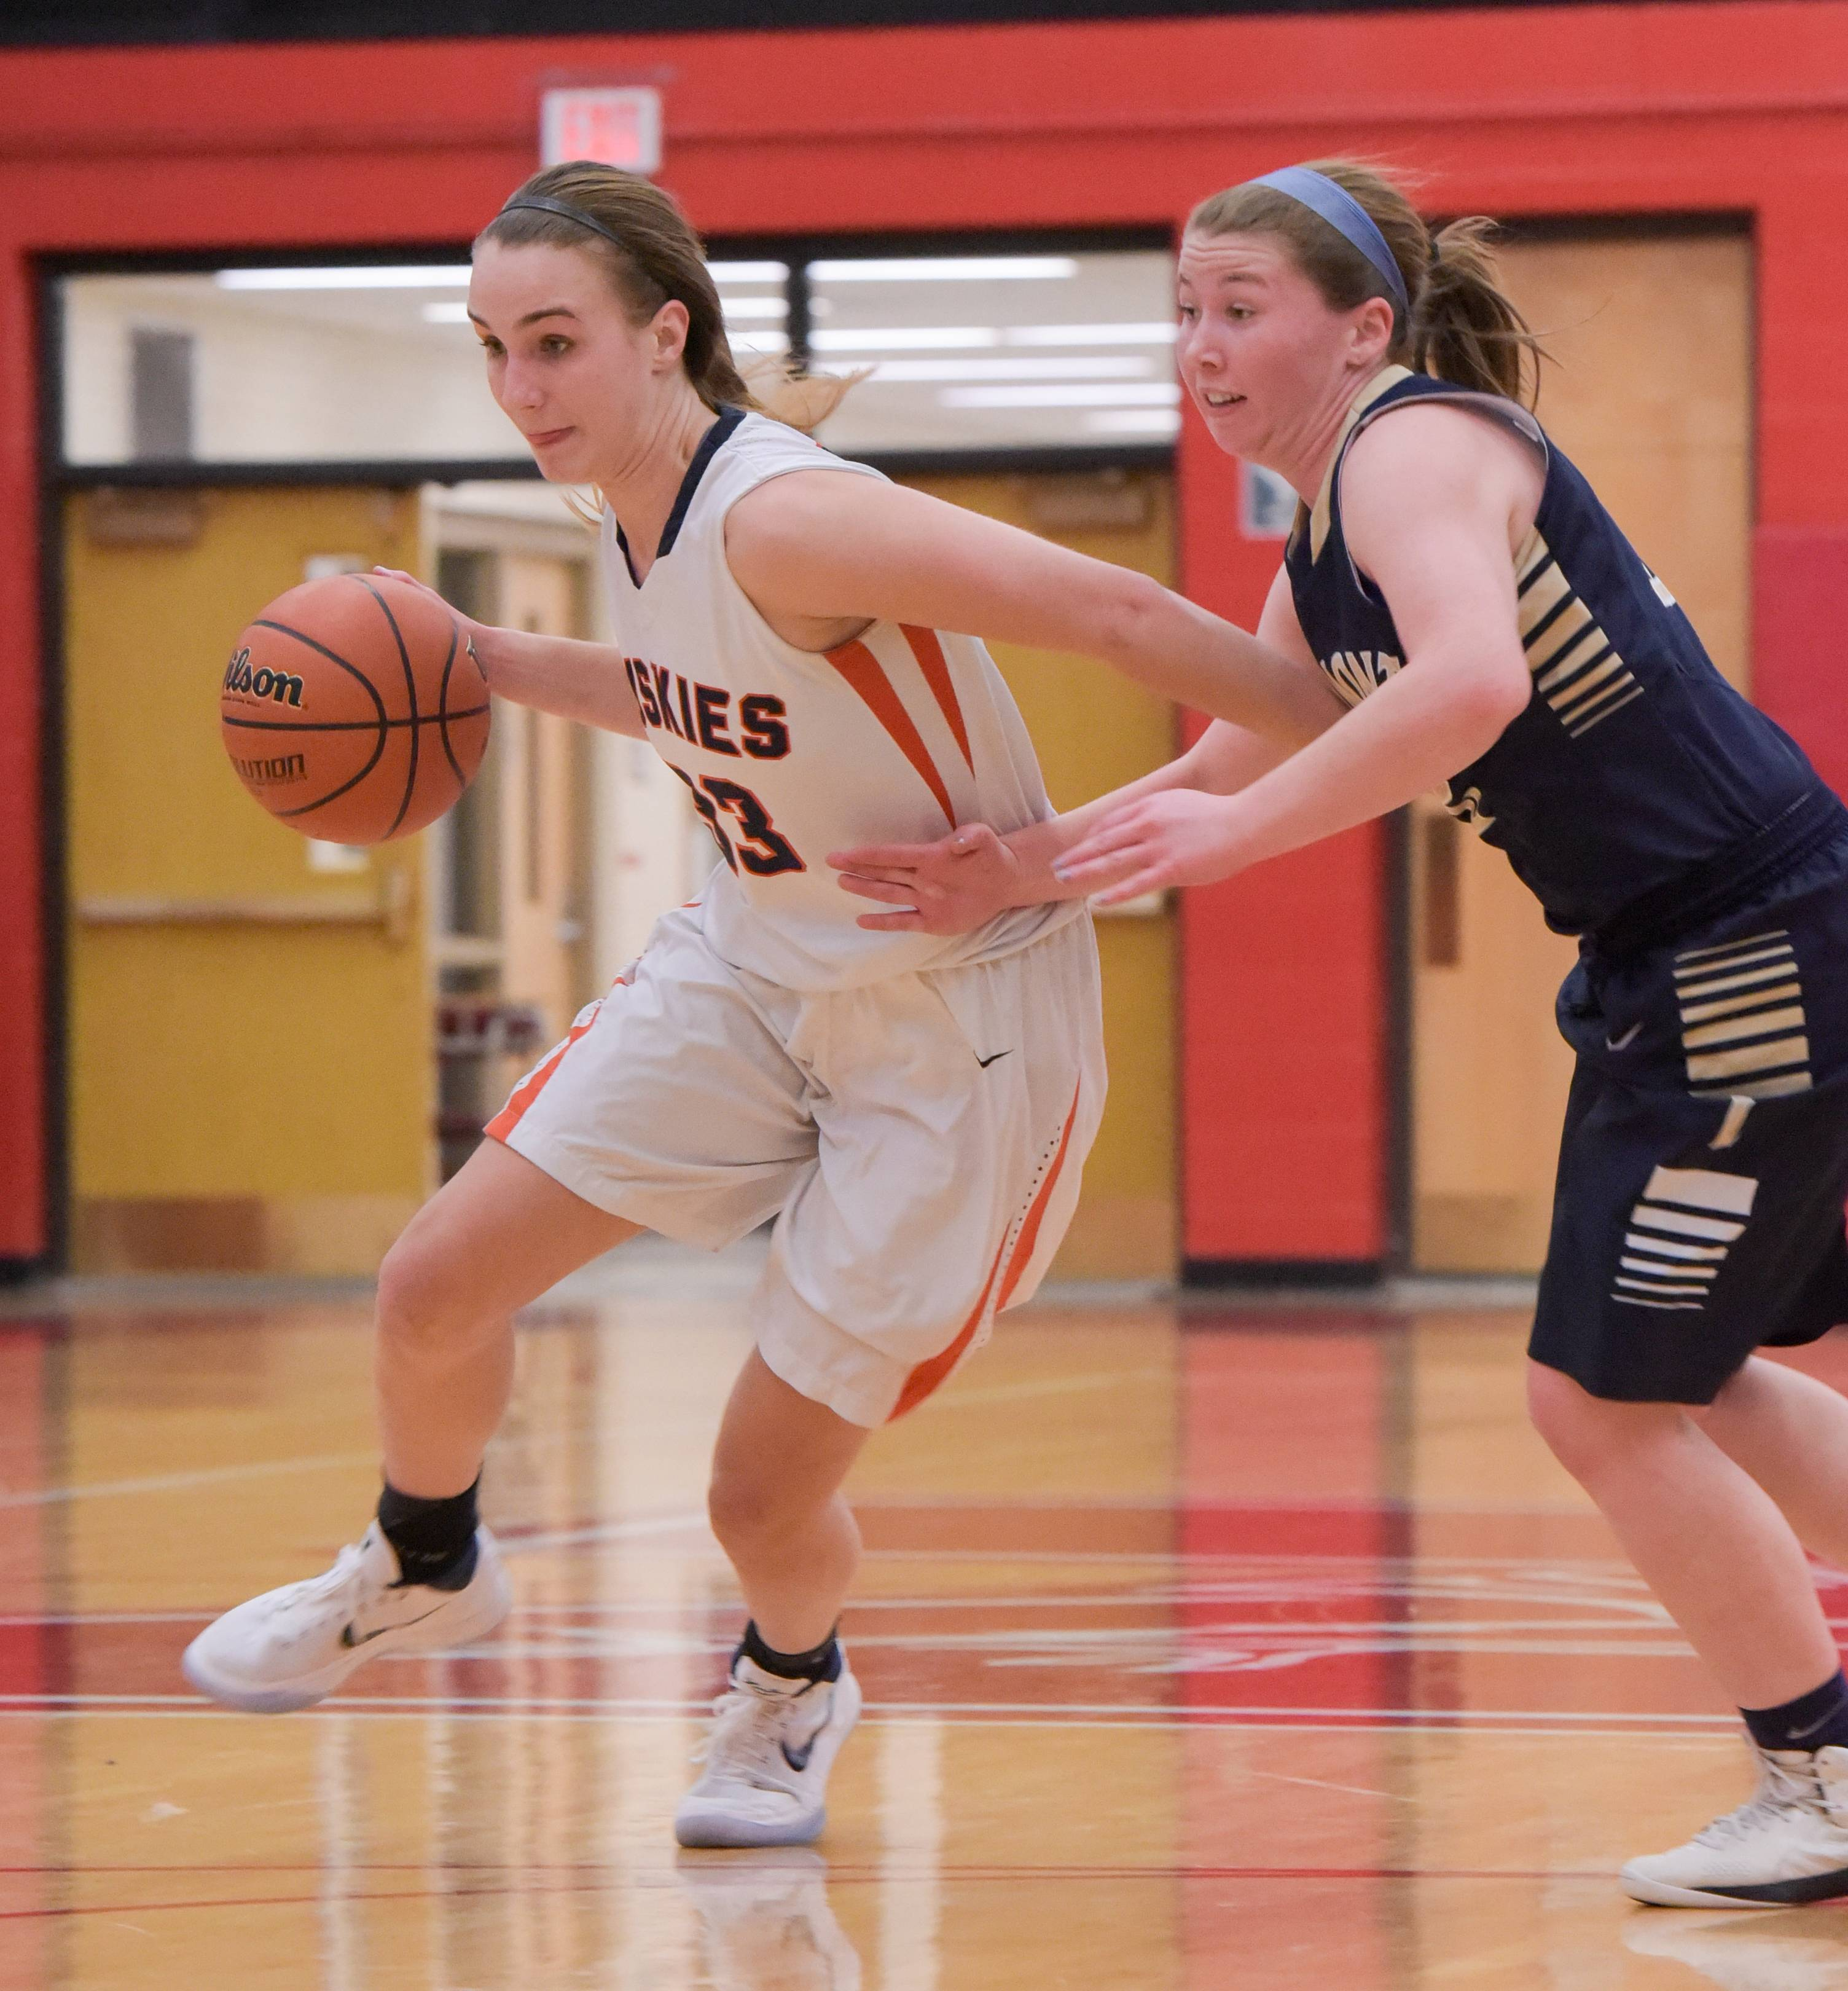 Naperville North's Greta Kampshroeder (33) drives around Lemont's Michelle Jerantowski (12)during the Class 4A girls basketball regional semifinals on February 14, 2018.